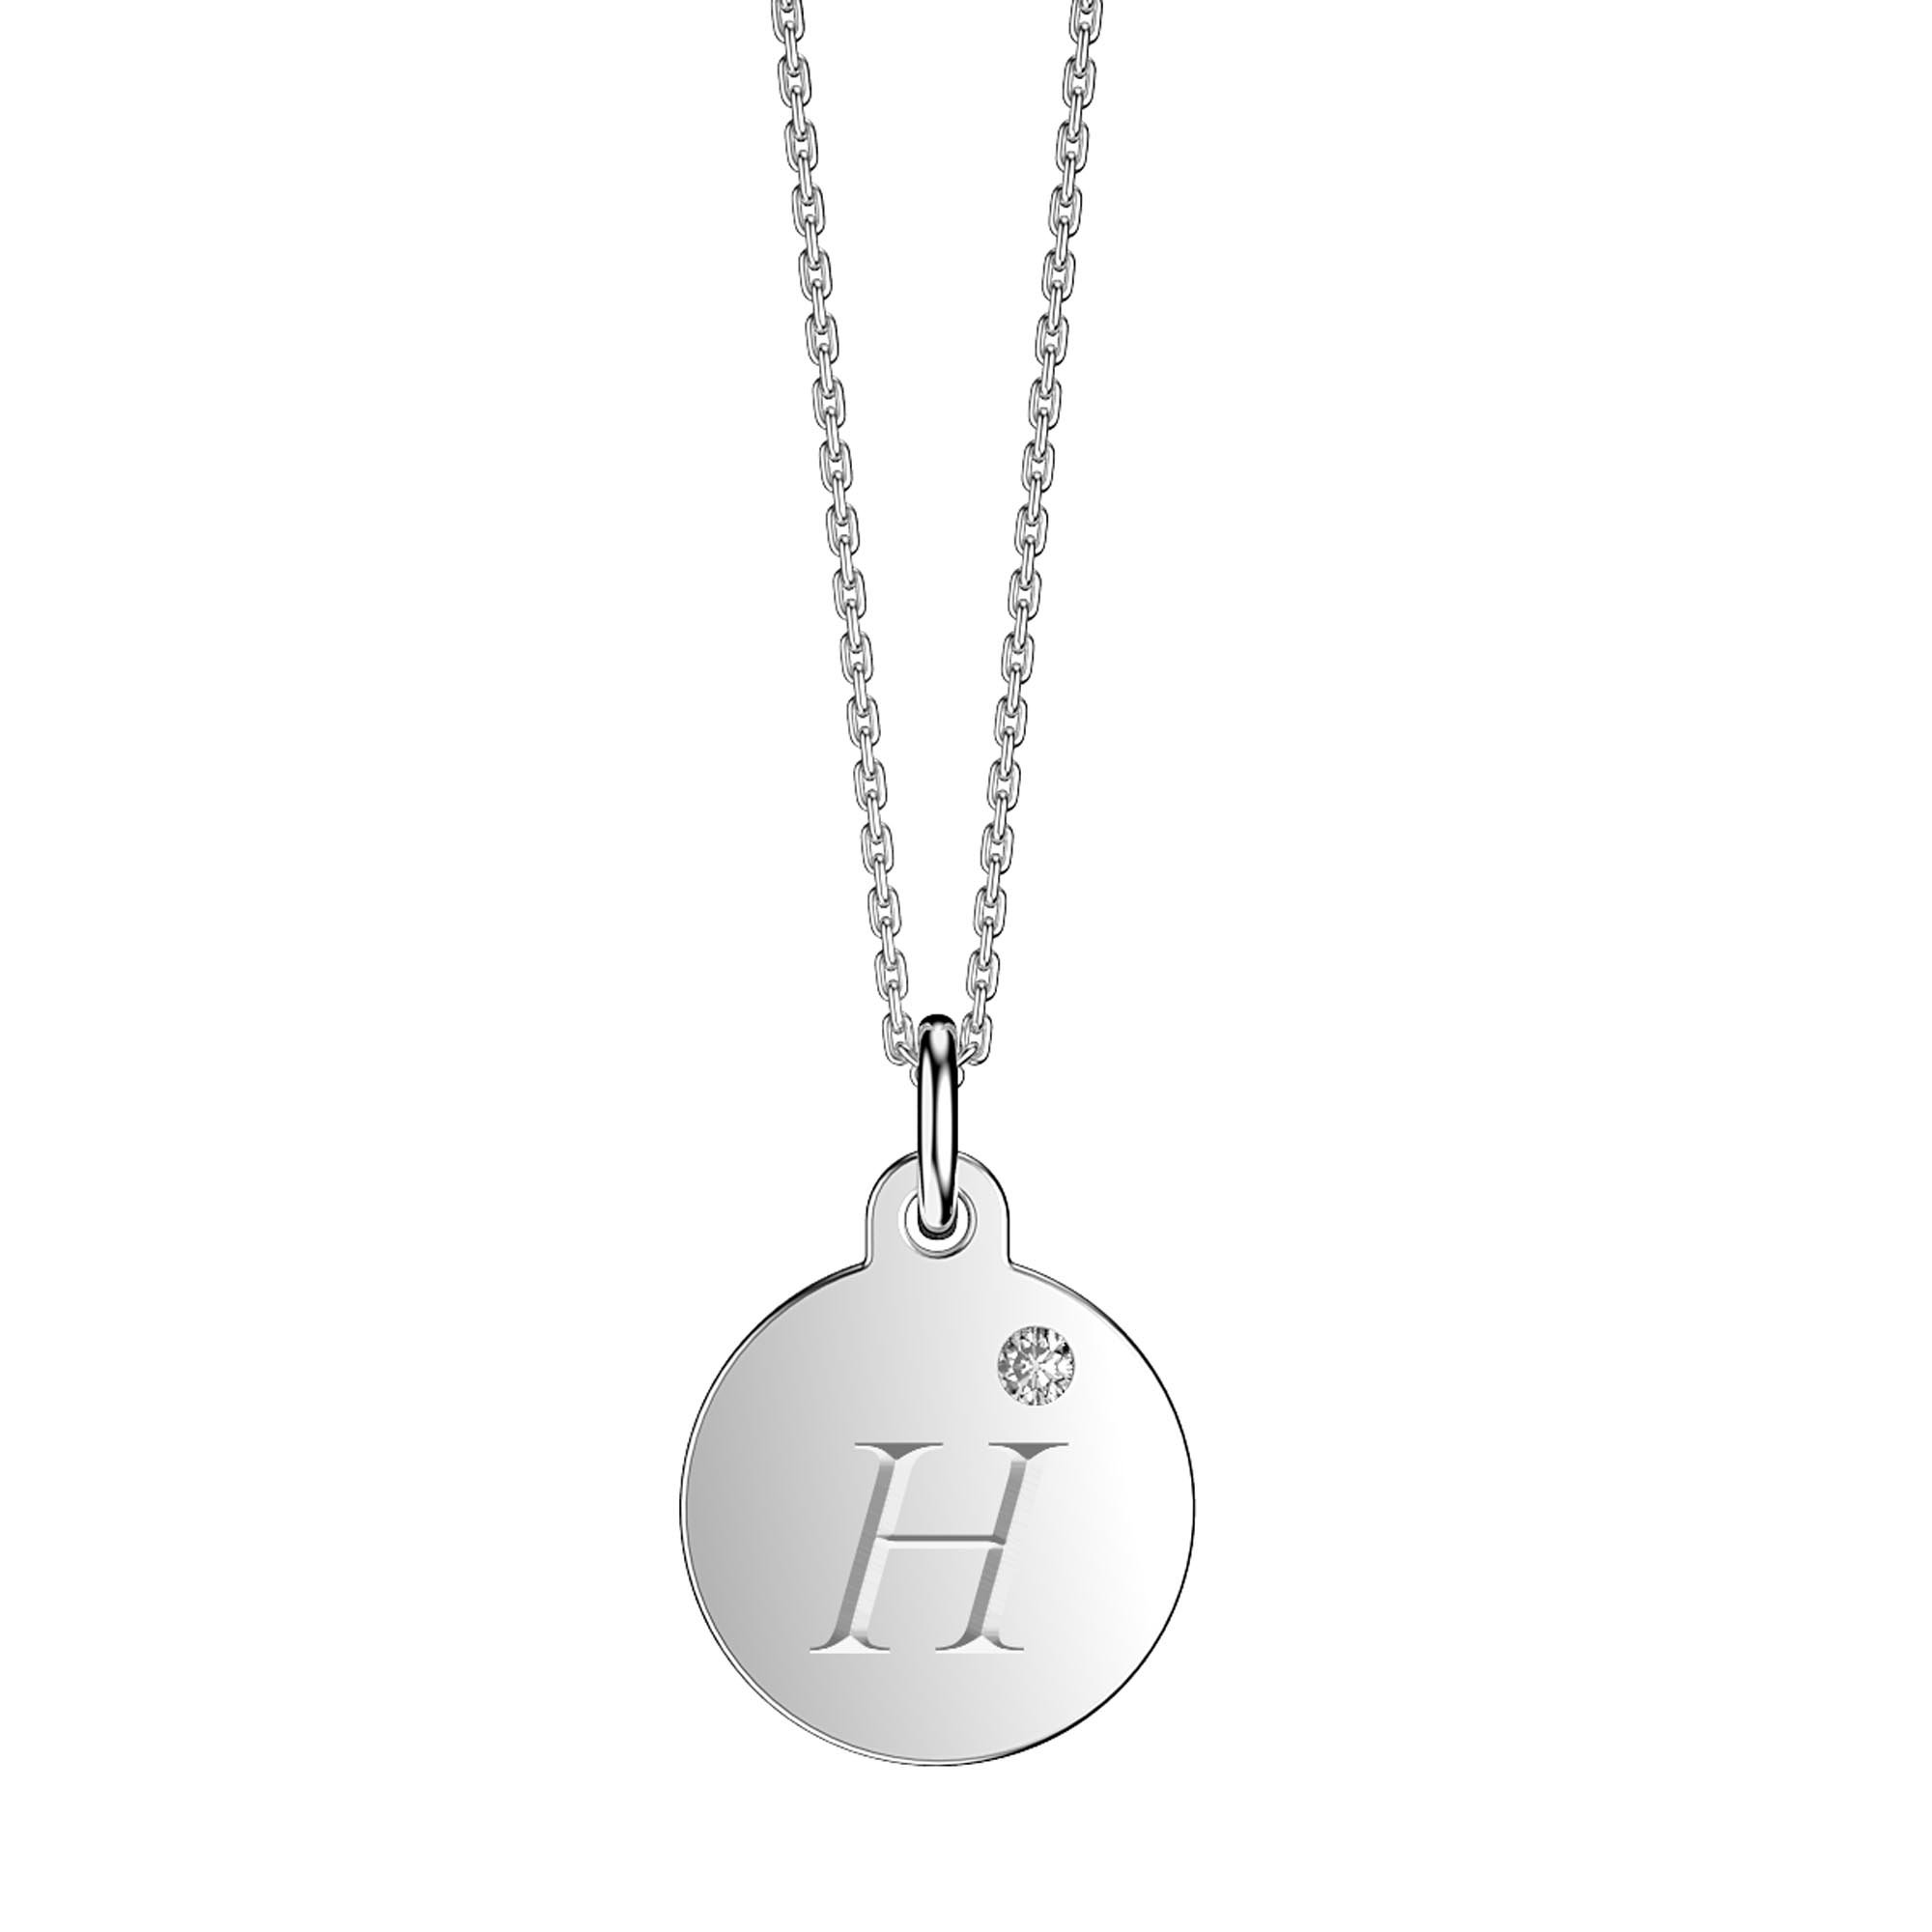 1537af87d Charmisma Moissanite Platinum plated Silver Round Alphabet Tag Small Pendant  H. Tap to expand